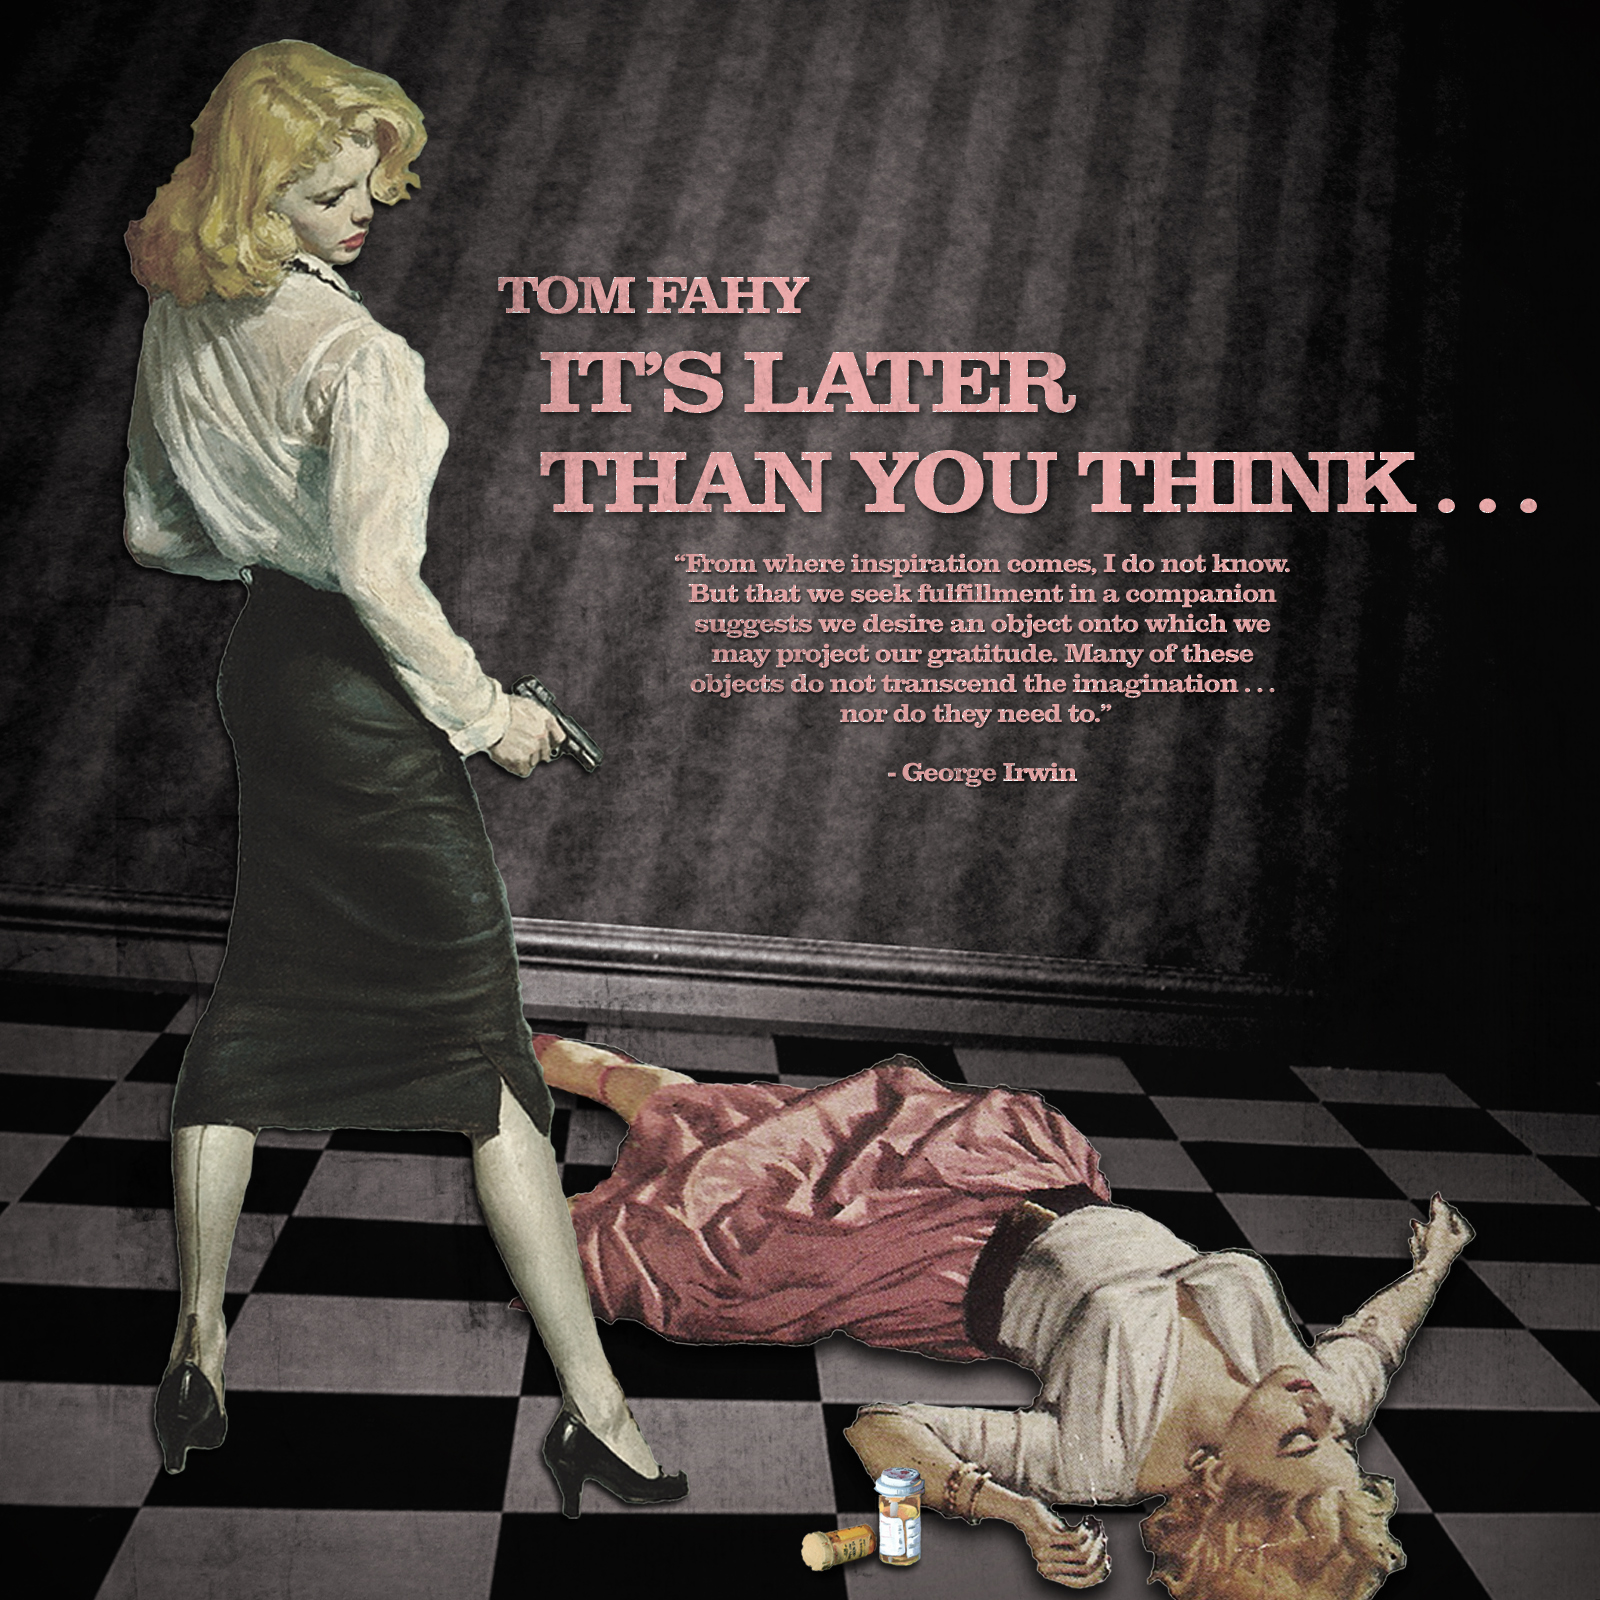 It's Later Than You Think… by Tom Fahy